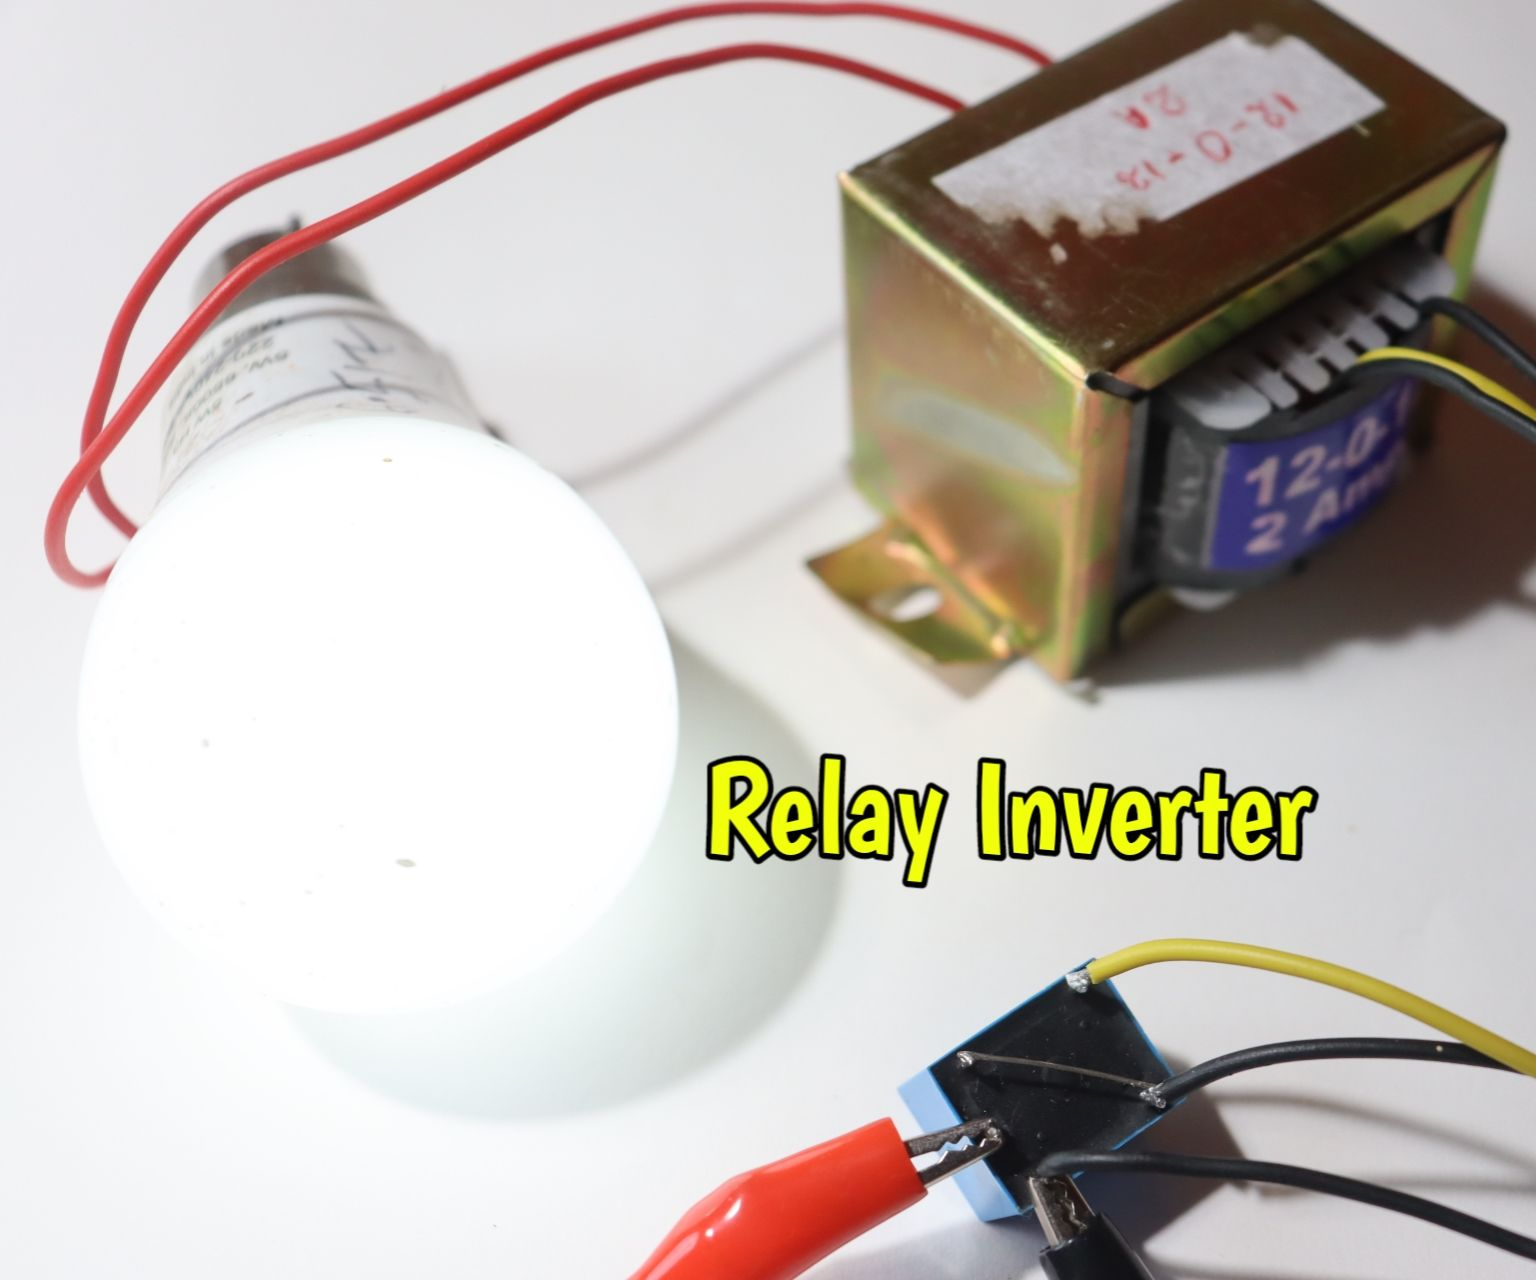 How to Make Inverter Using Relay : 7 Steps - InstructablesInstructables